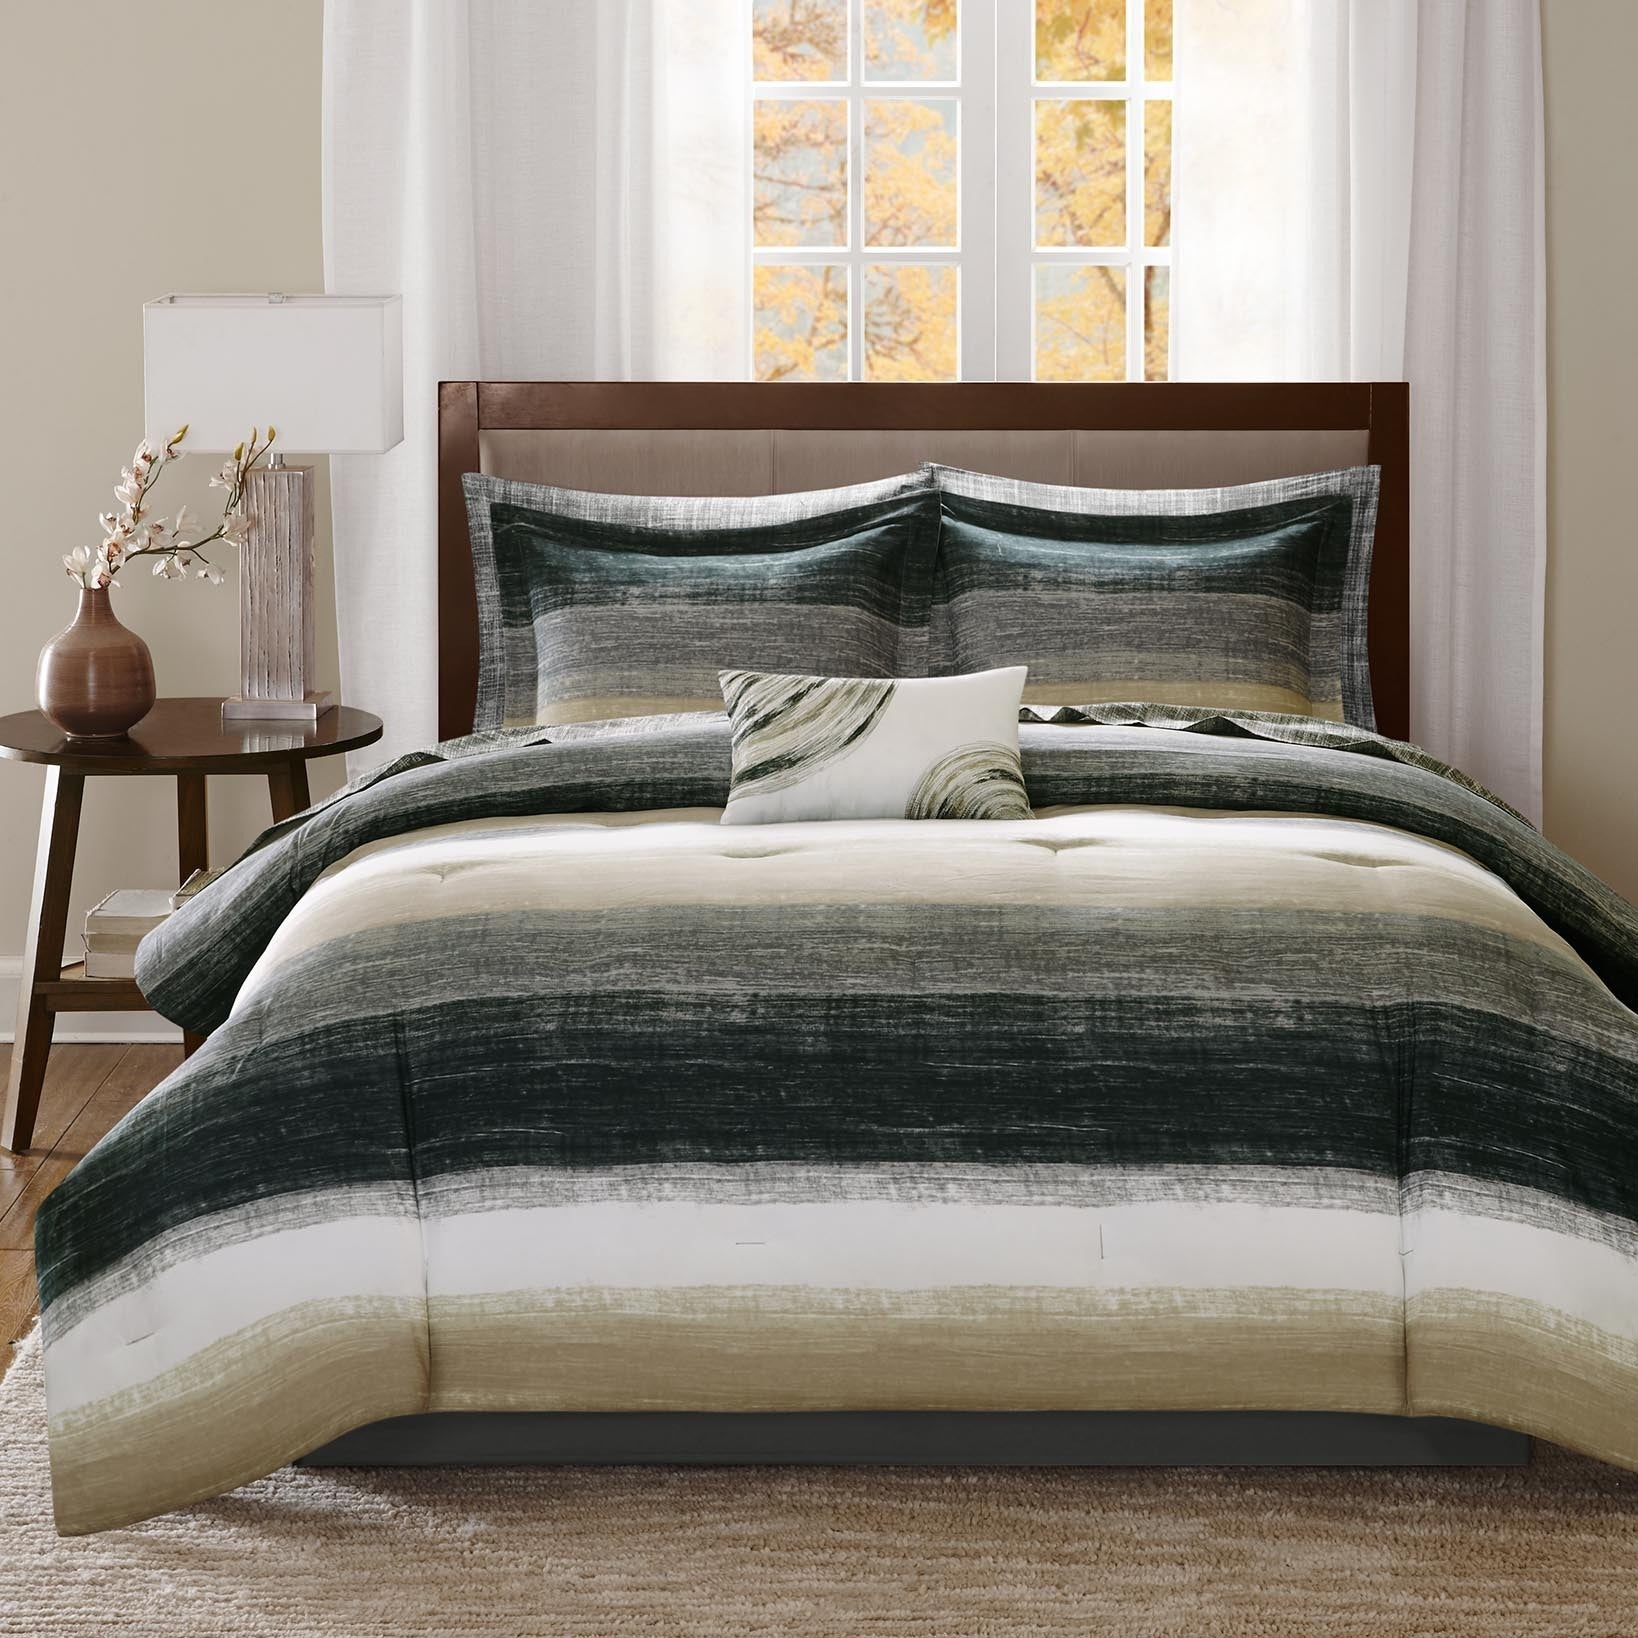 lafayette on product overstock madison set shipping free comforter bath orders bedding com bed park grey